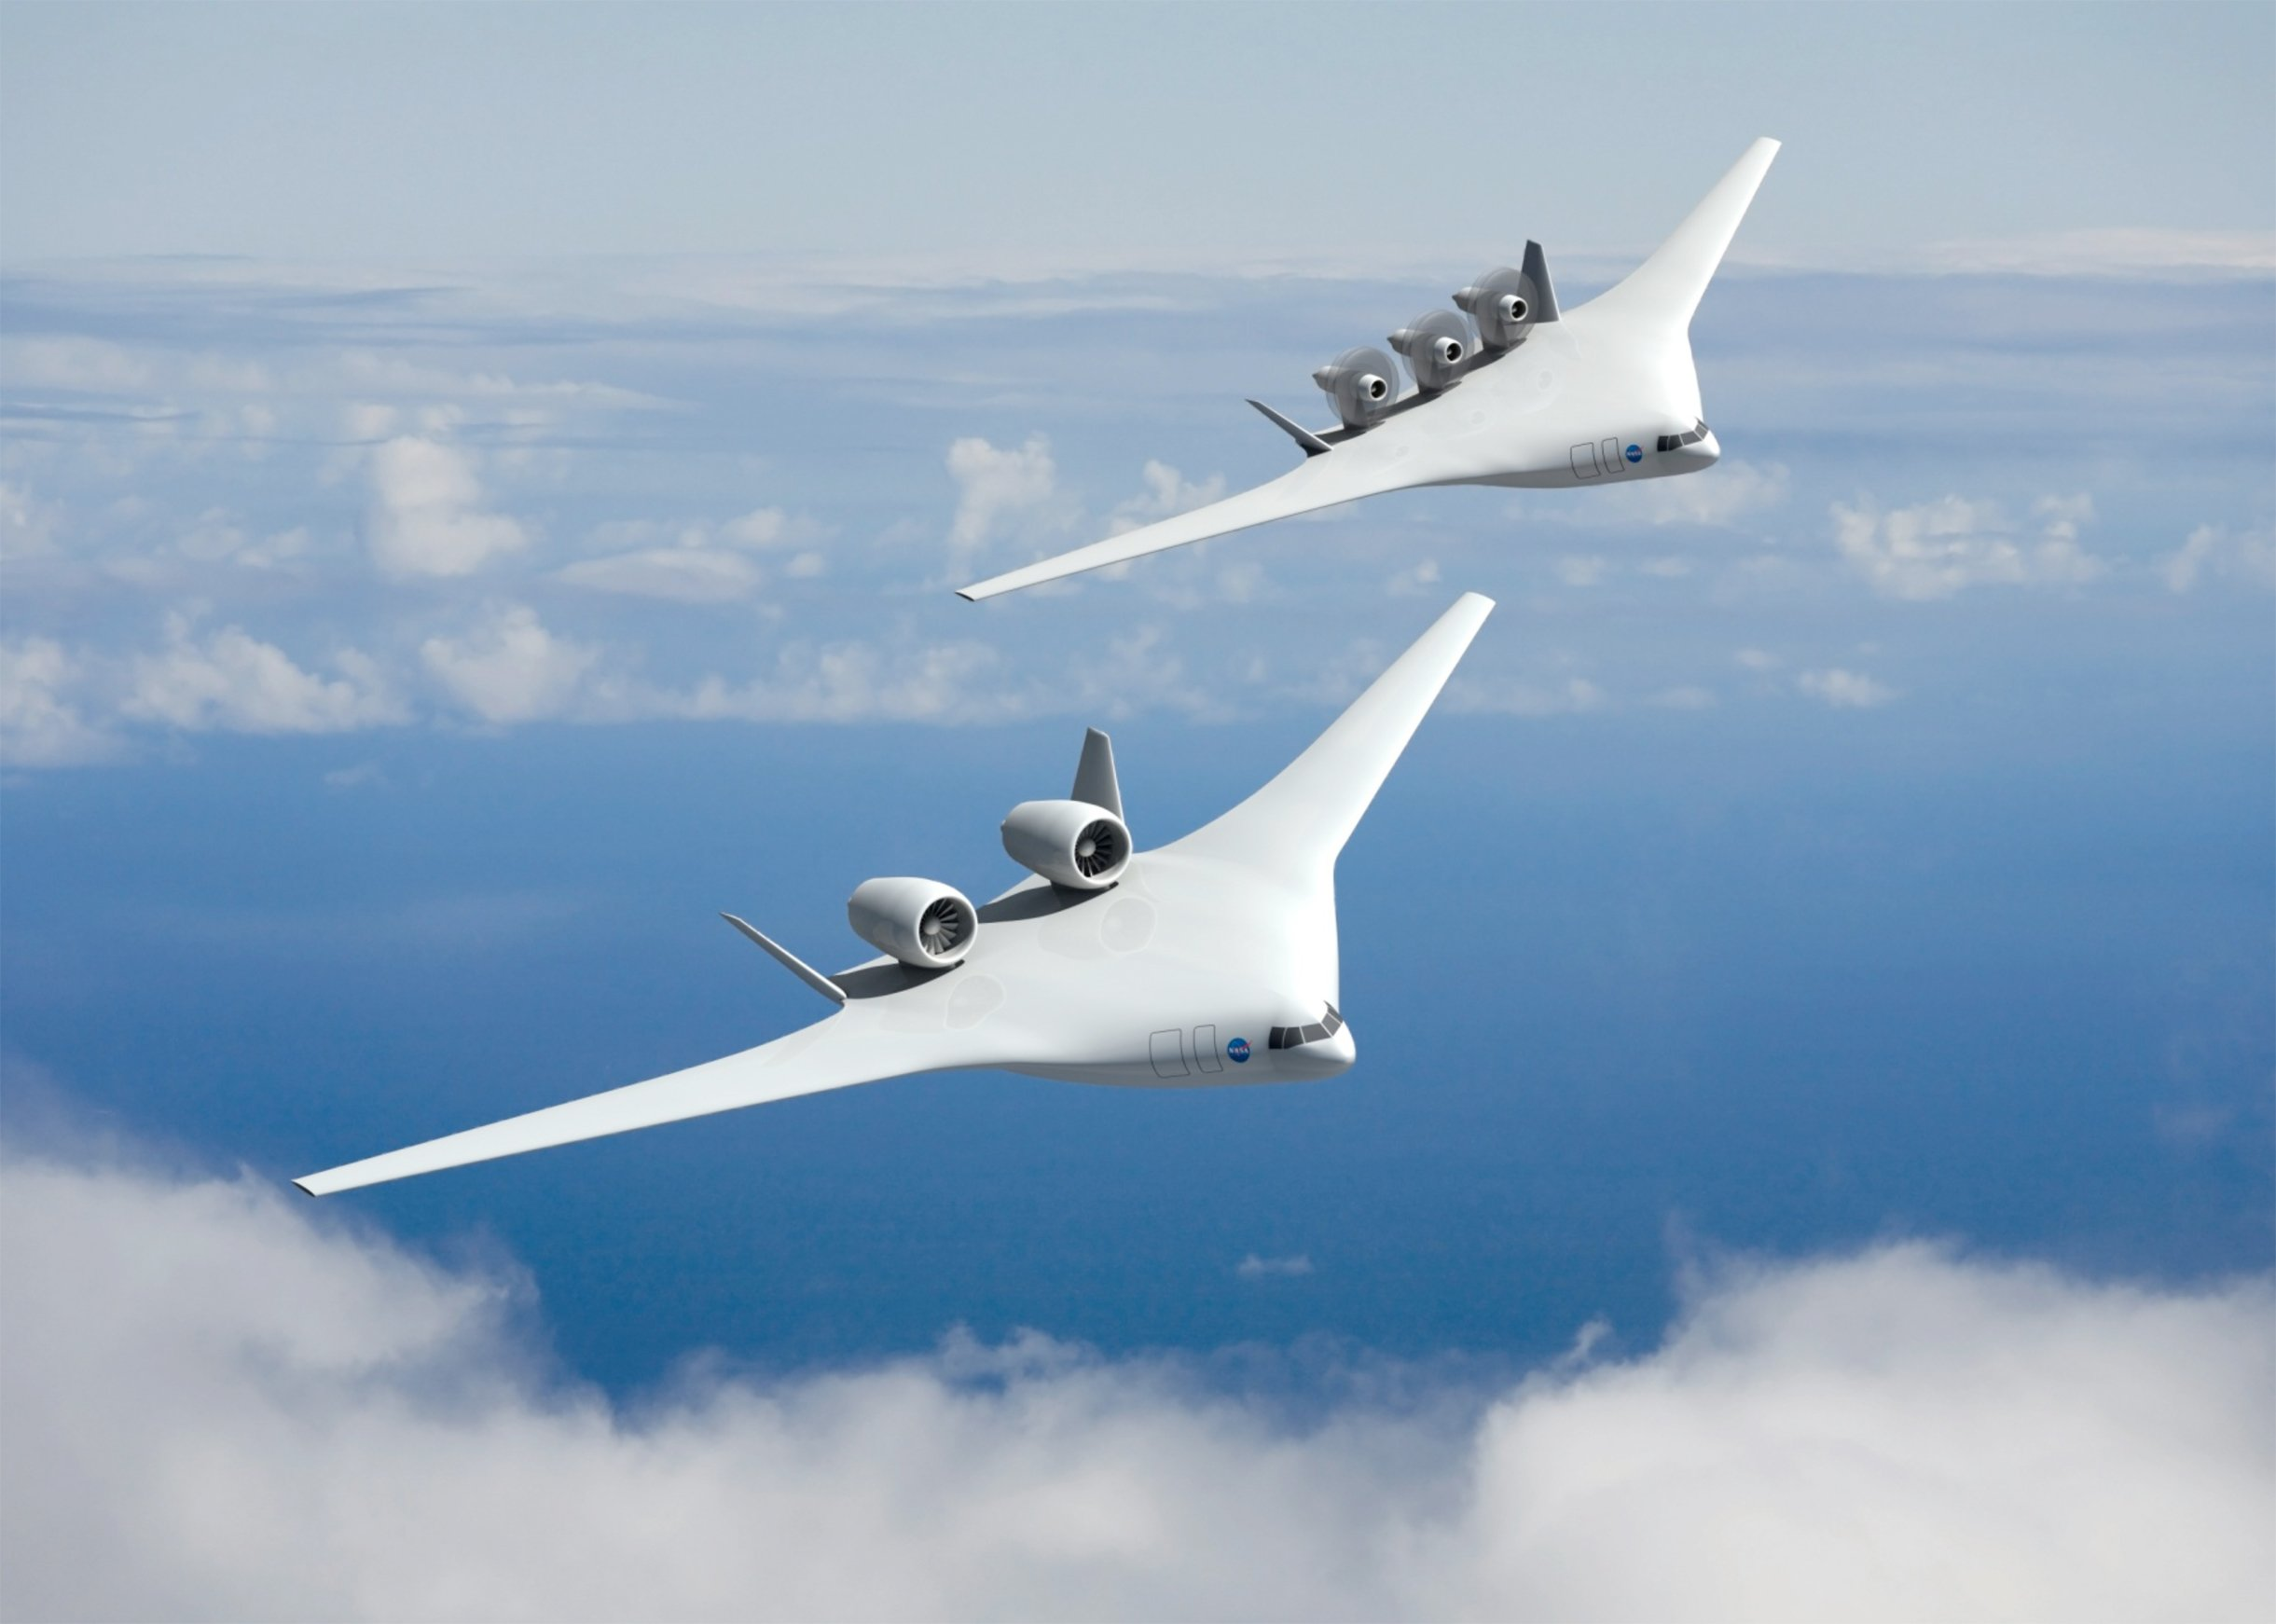 nasa x 48 drone aircraft - photo #14